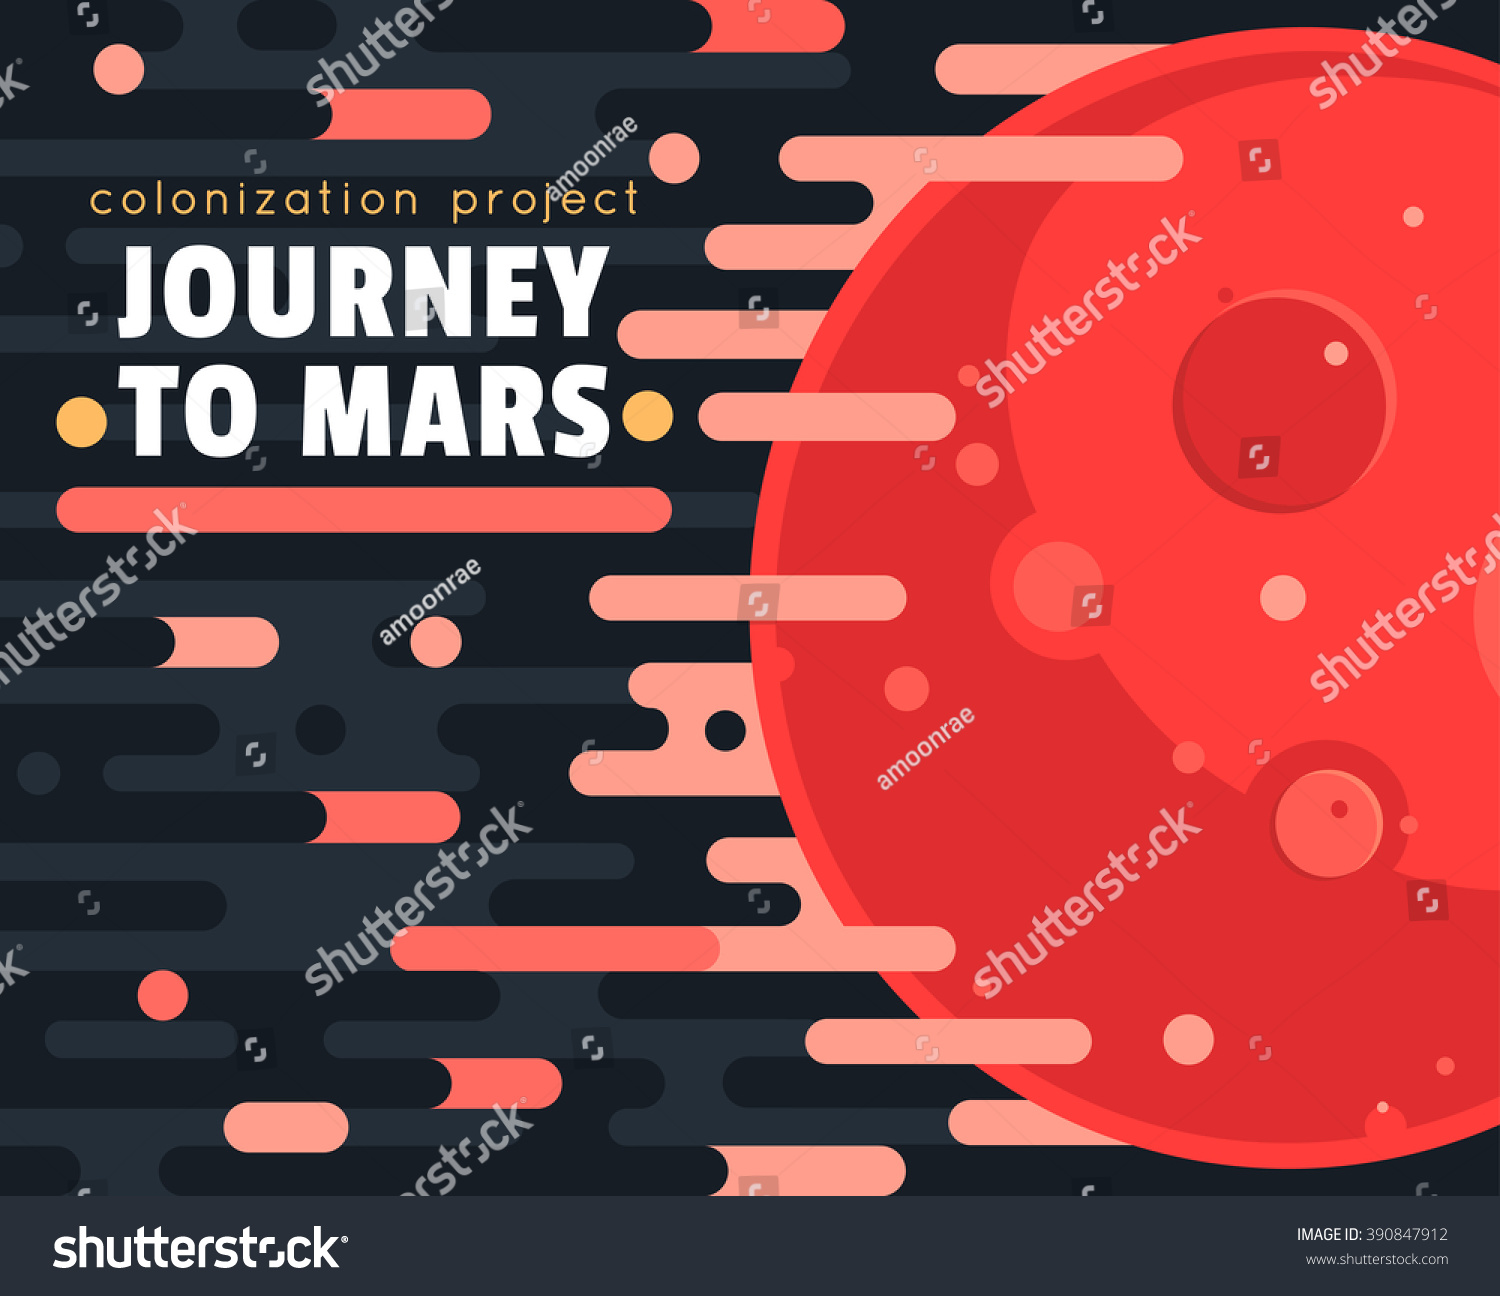 project red planet mars What do organic molecules on mars tell us about how the planet works and the  possibility of life  in nasa's basalt project, a team of engineers simulate  challenges  engineer, and a space futurist what life would be like on the red  planet.